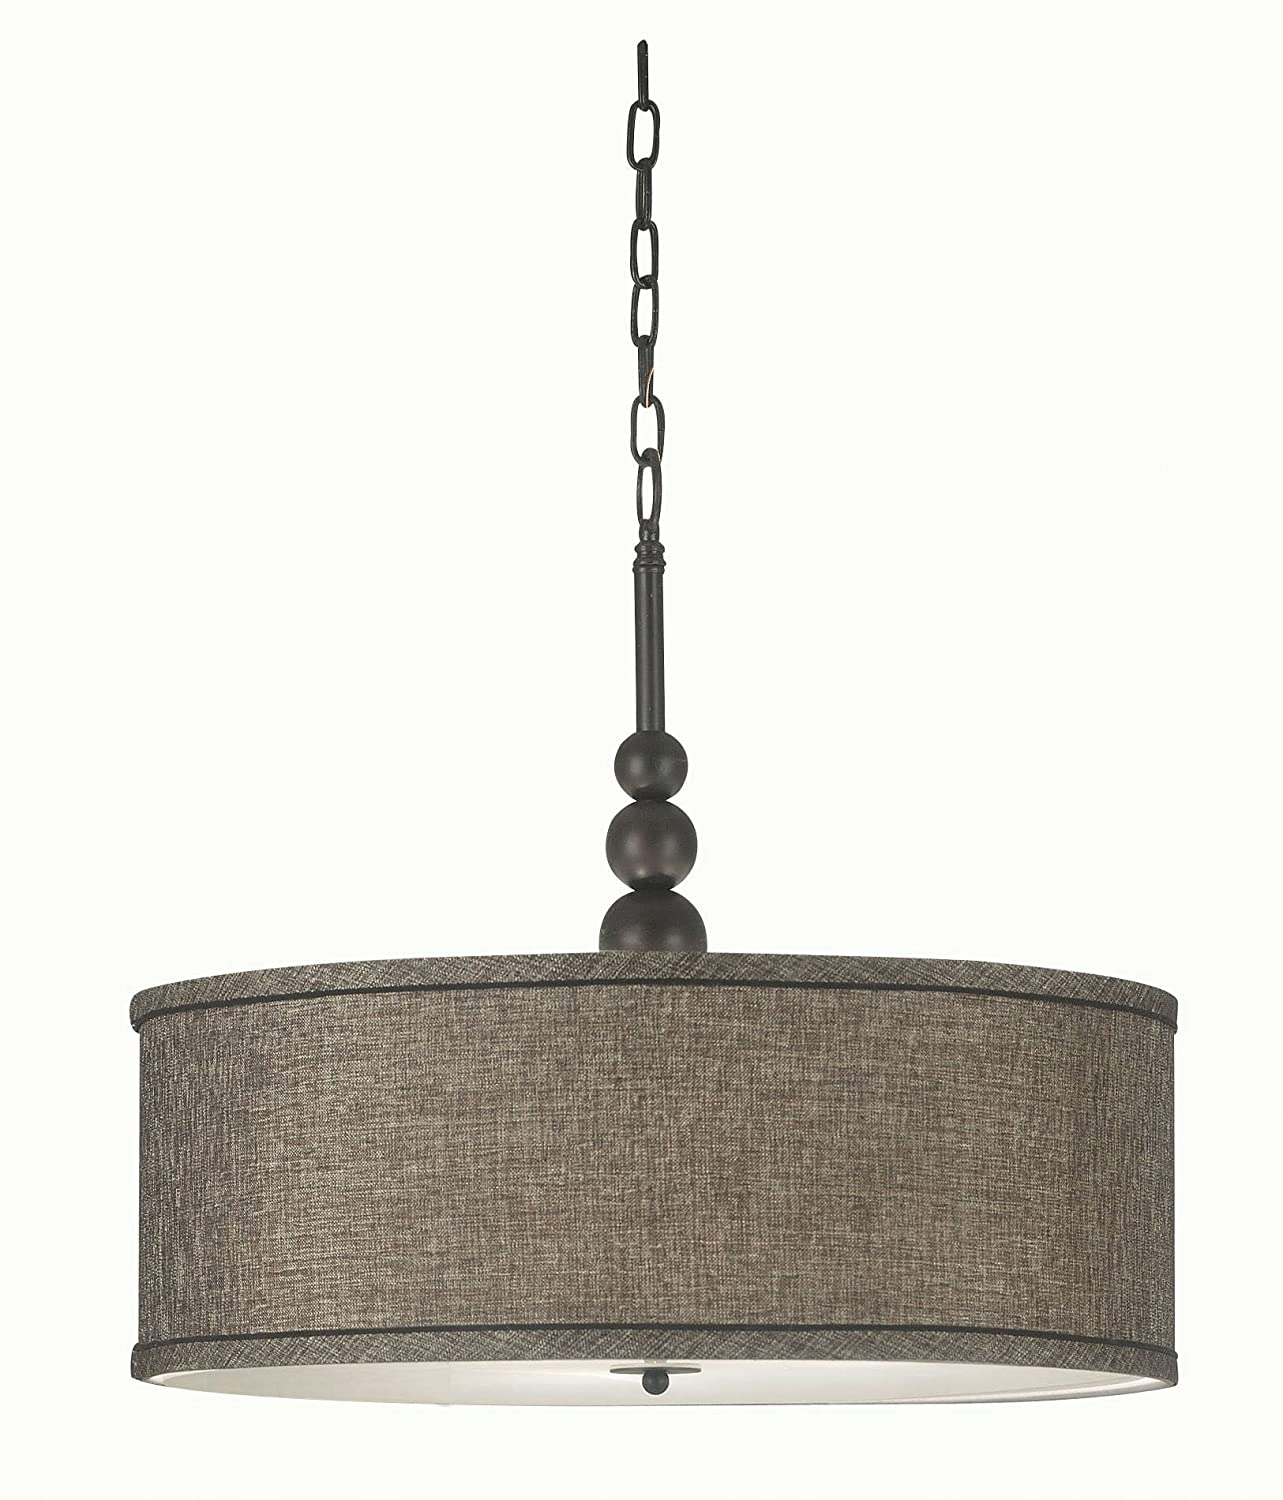 Kenroy home 91640orb margot 3 light pendant blackened oil rubbed kenroy home 91640orb margot 3 light pendant blackened oil rubbed bronze ceiling pendant fixtures amazon aloadofball Image collections